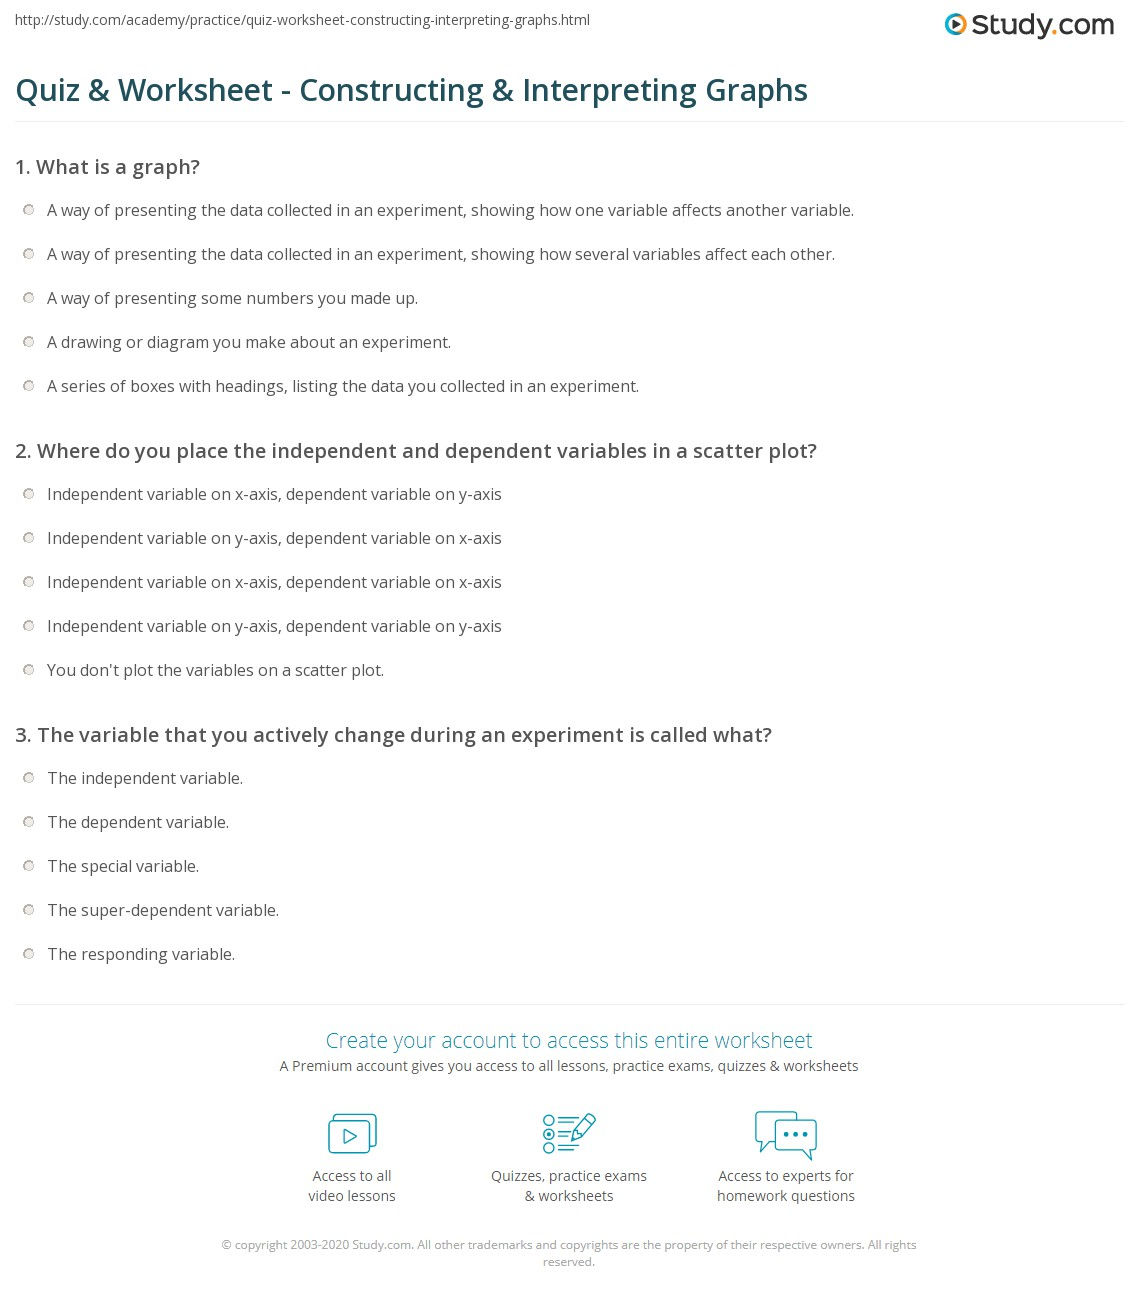 26 Interpreting Graphics Worksheet Answers Chemistry